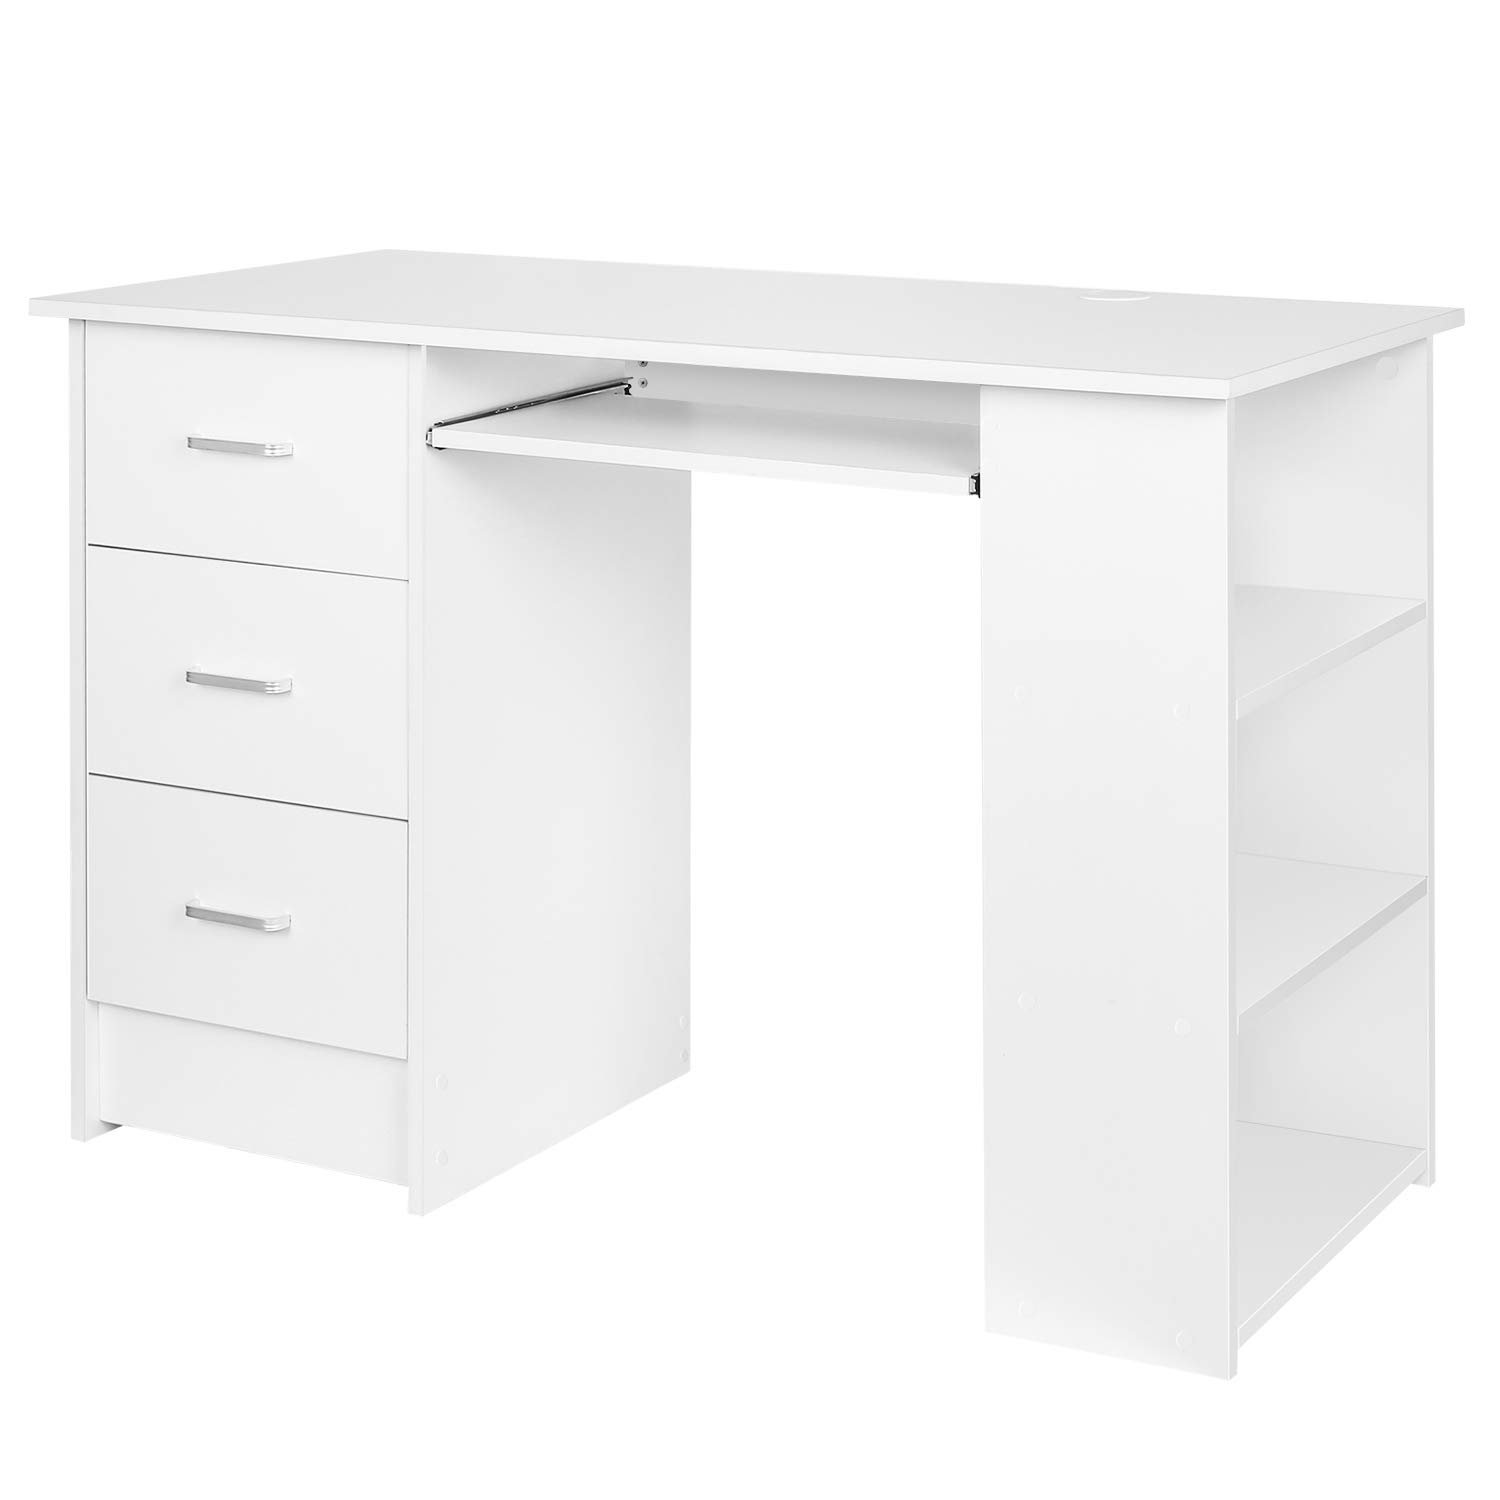 sports shoes bbf44 faf88 Homfa Computer Desk Home Office Workstation PC Laptop Table Study Desk with  3 Drawers and 3 Shelves Keyboard Shelf White 109x49x75cm